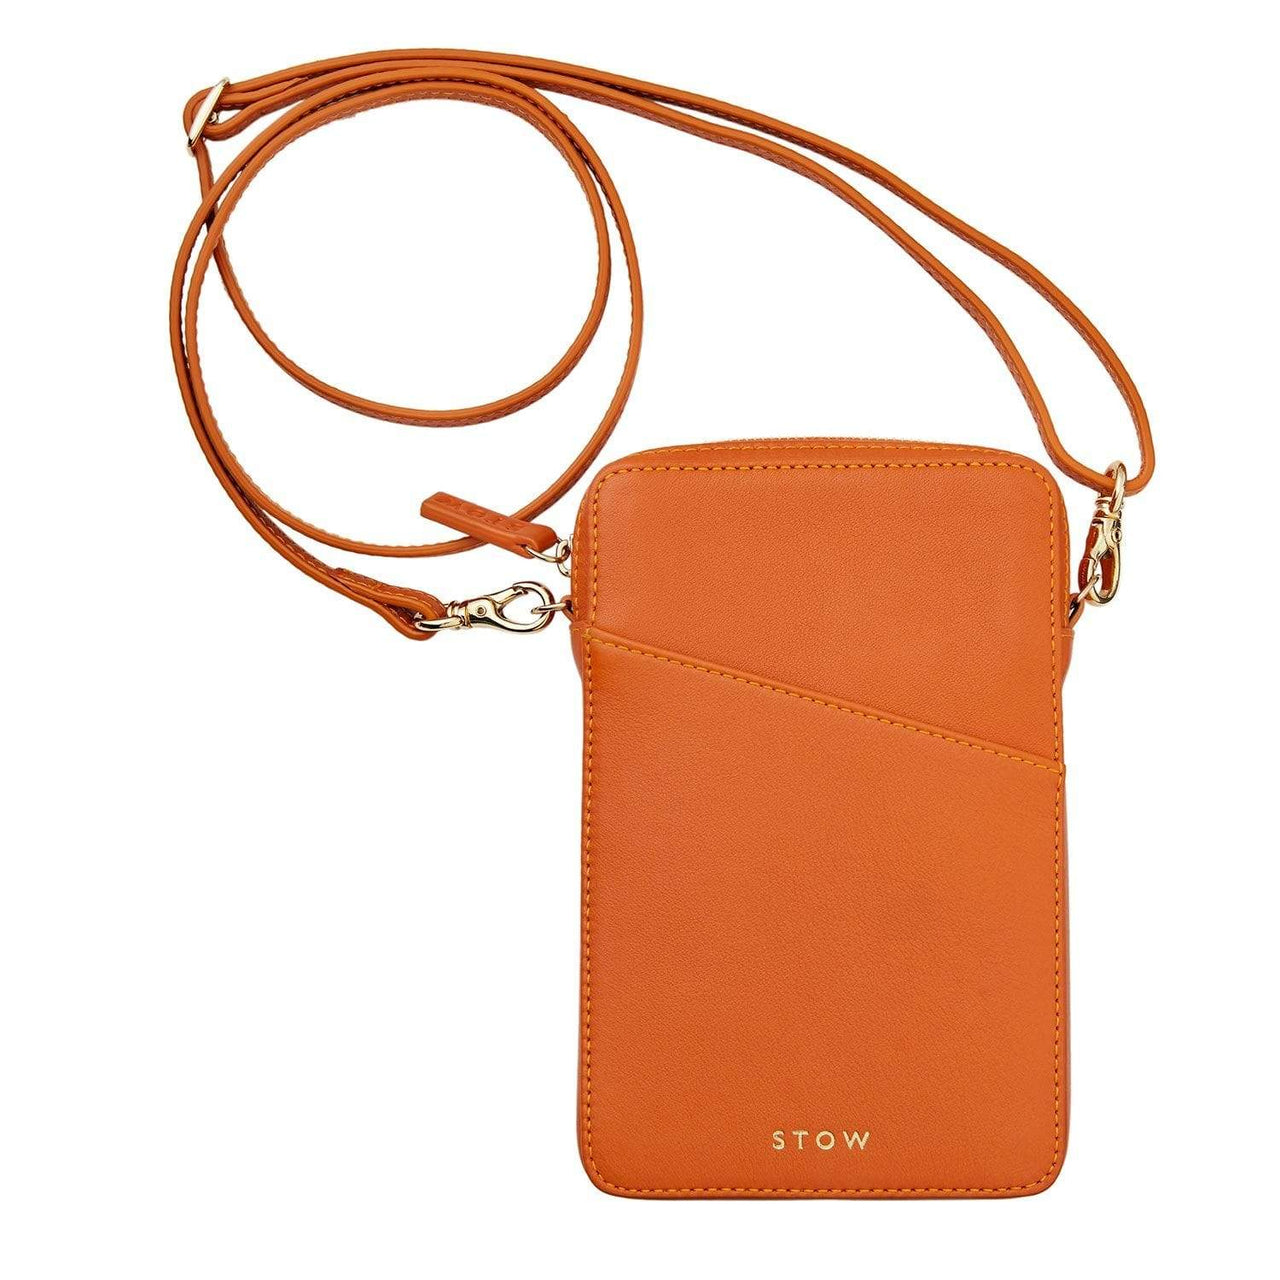 STOW Shoulder, Crossbody & Belt Bags Amber Orange Crossbody Phone Case